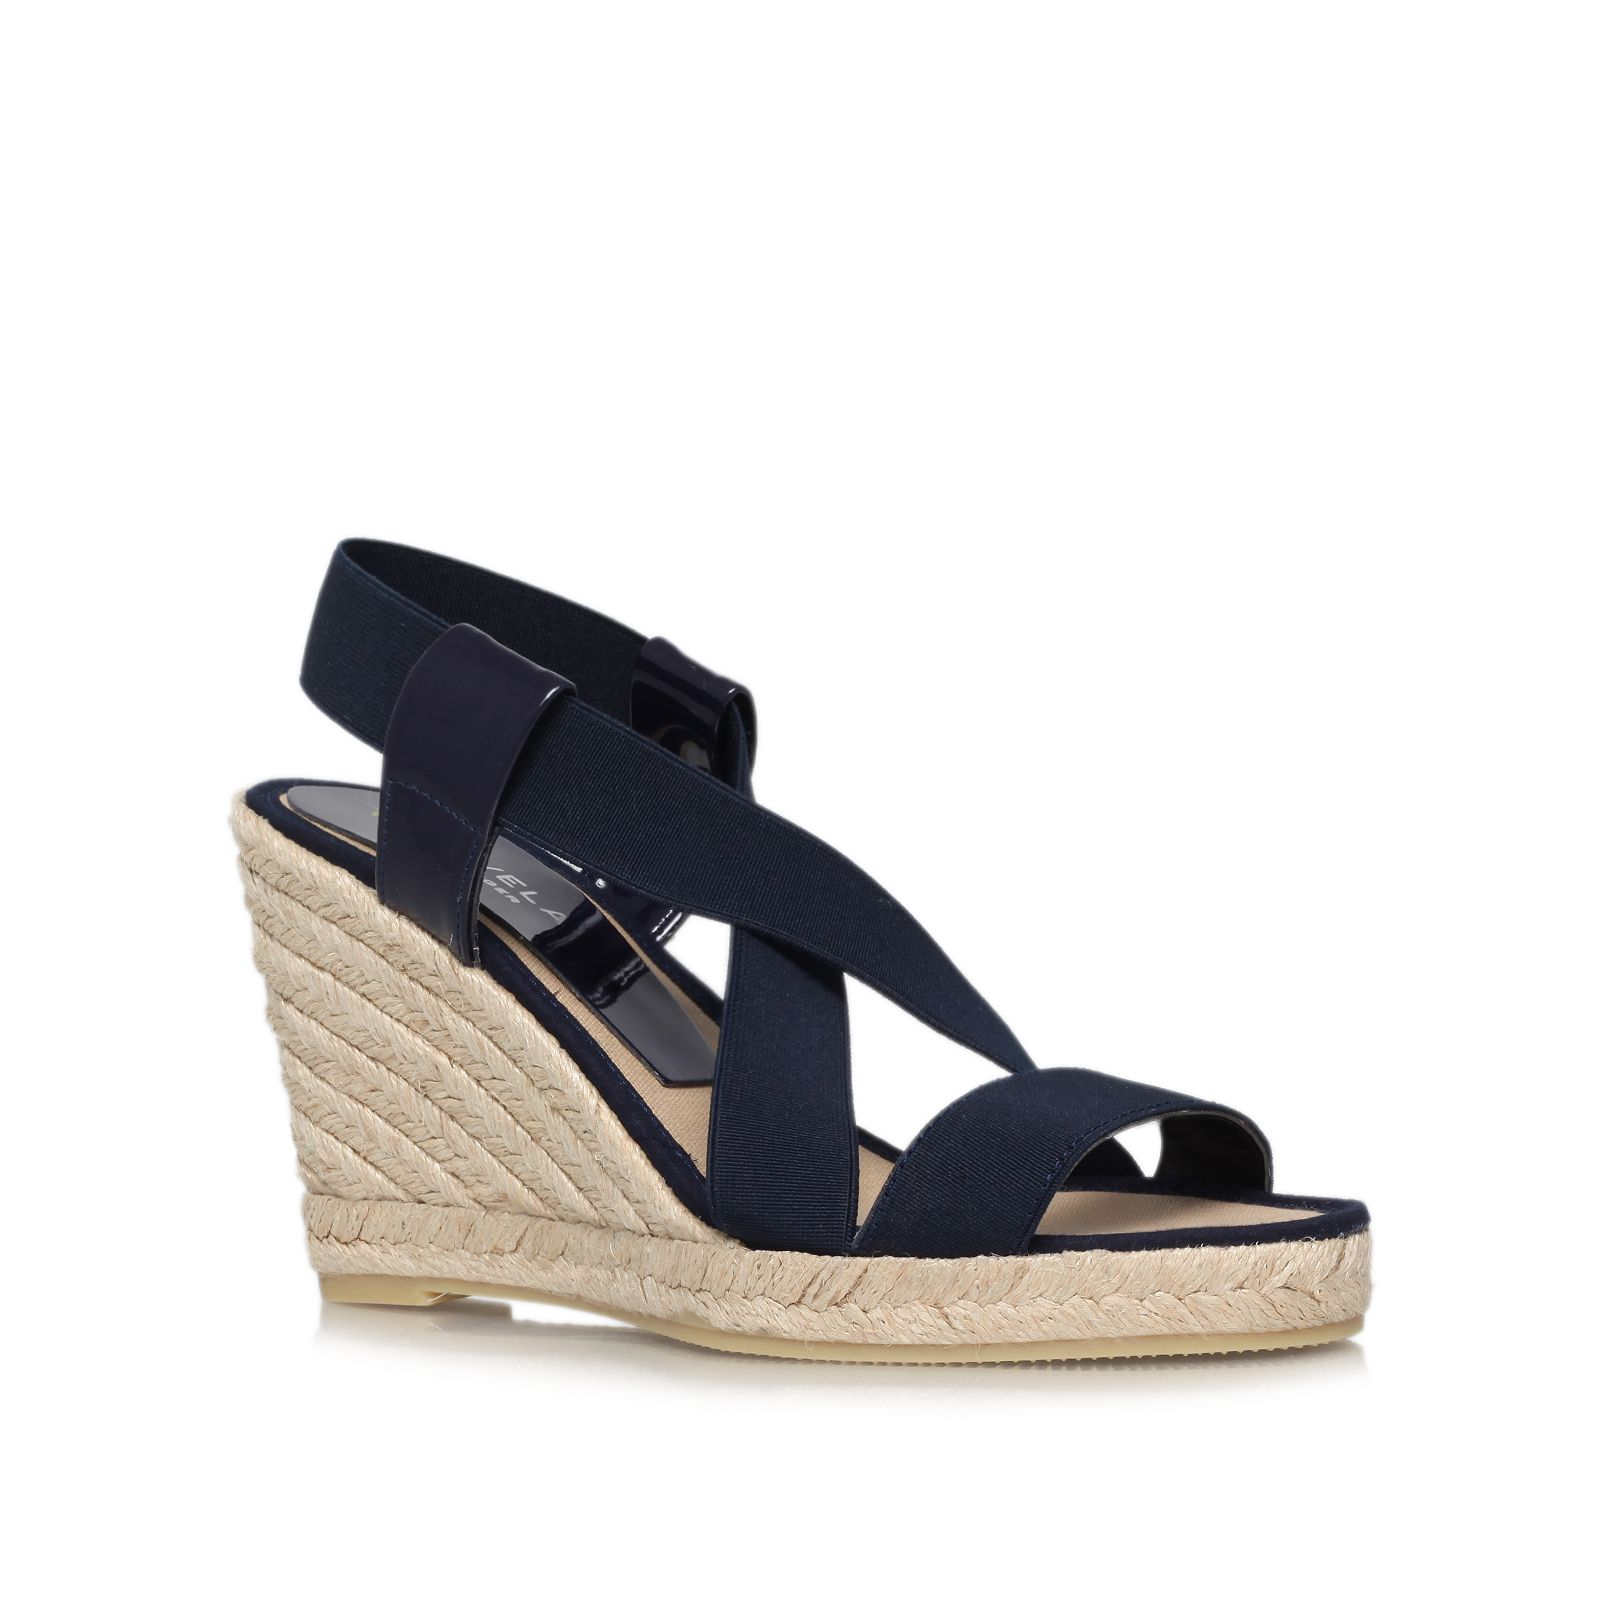 Kot mid heel wedge sandals